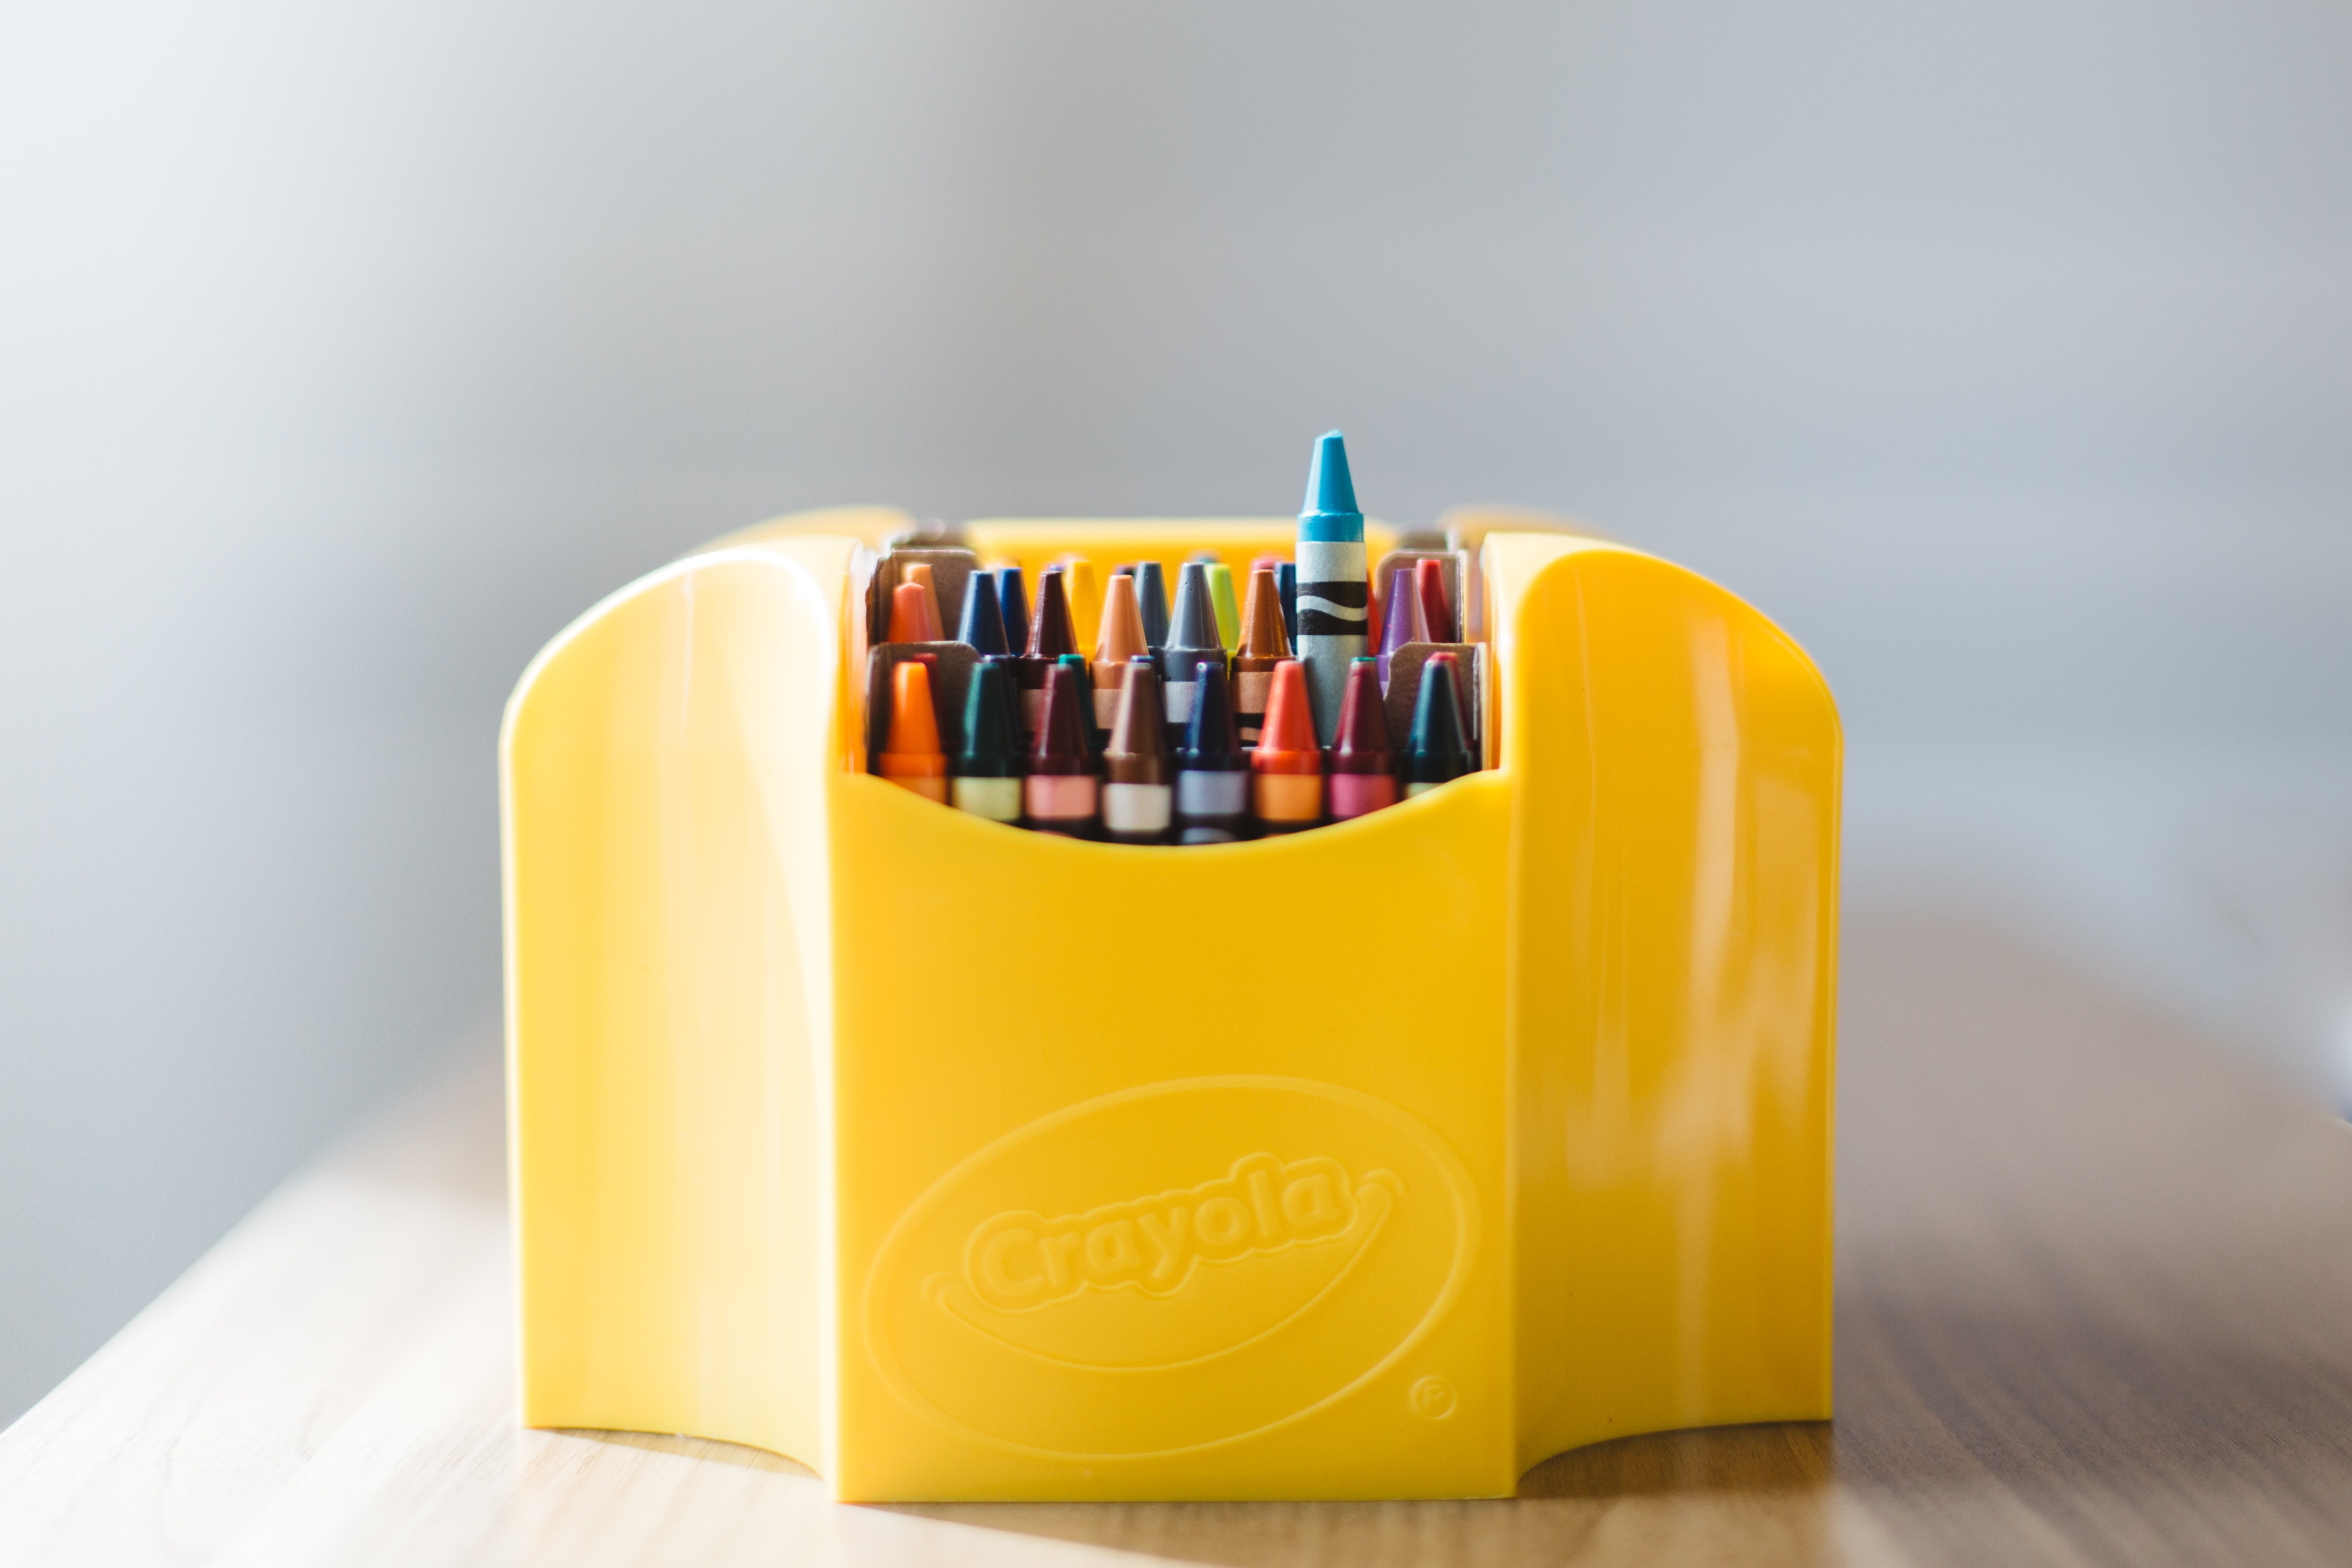 Yellow box of crayons sit on a wooden table